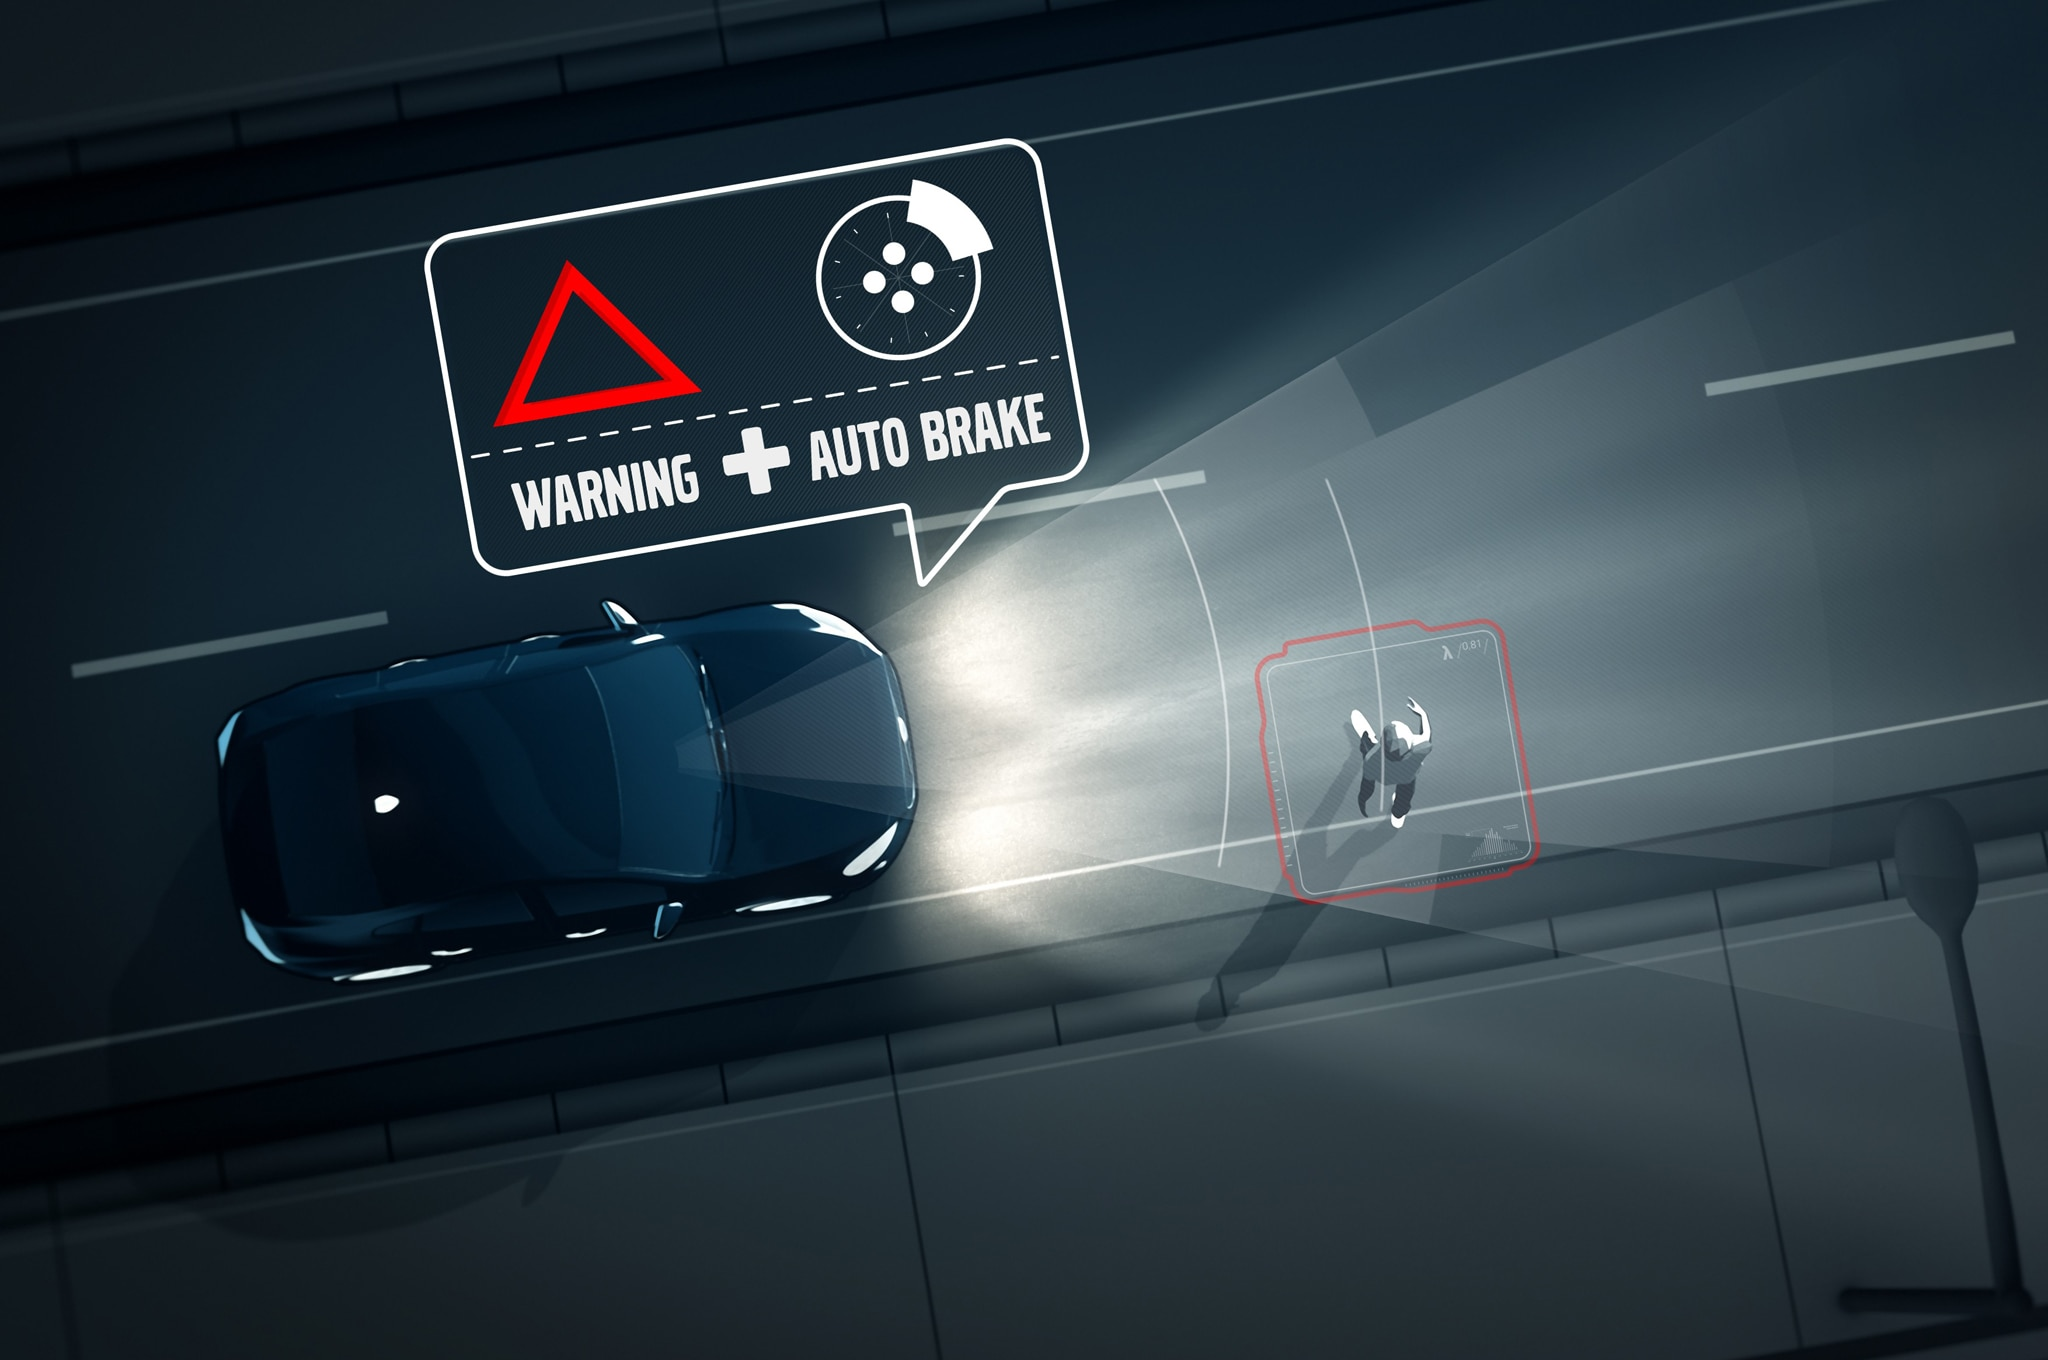 2015 Volvo XC90 Active Safety, Self-Parking Systems Detailed